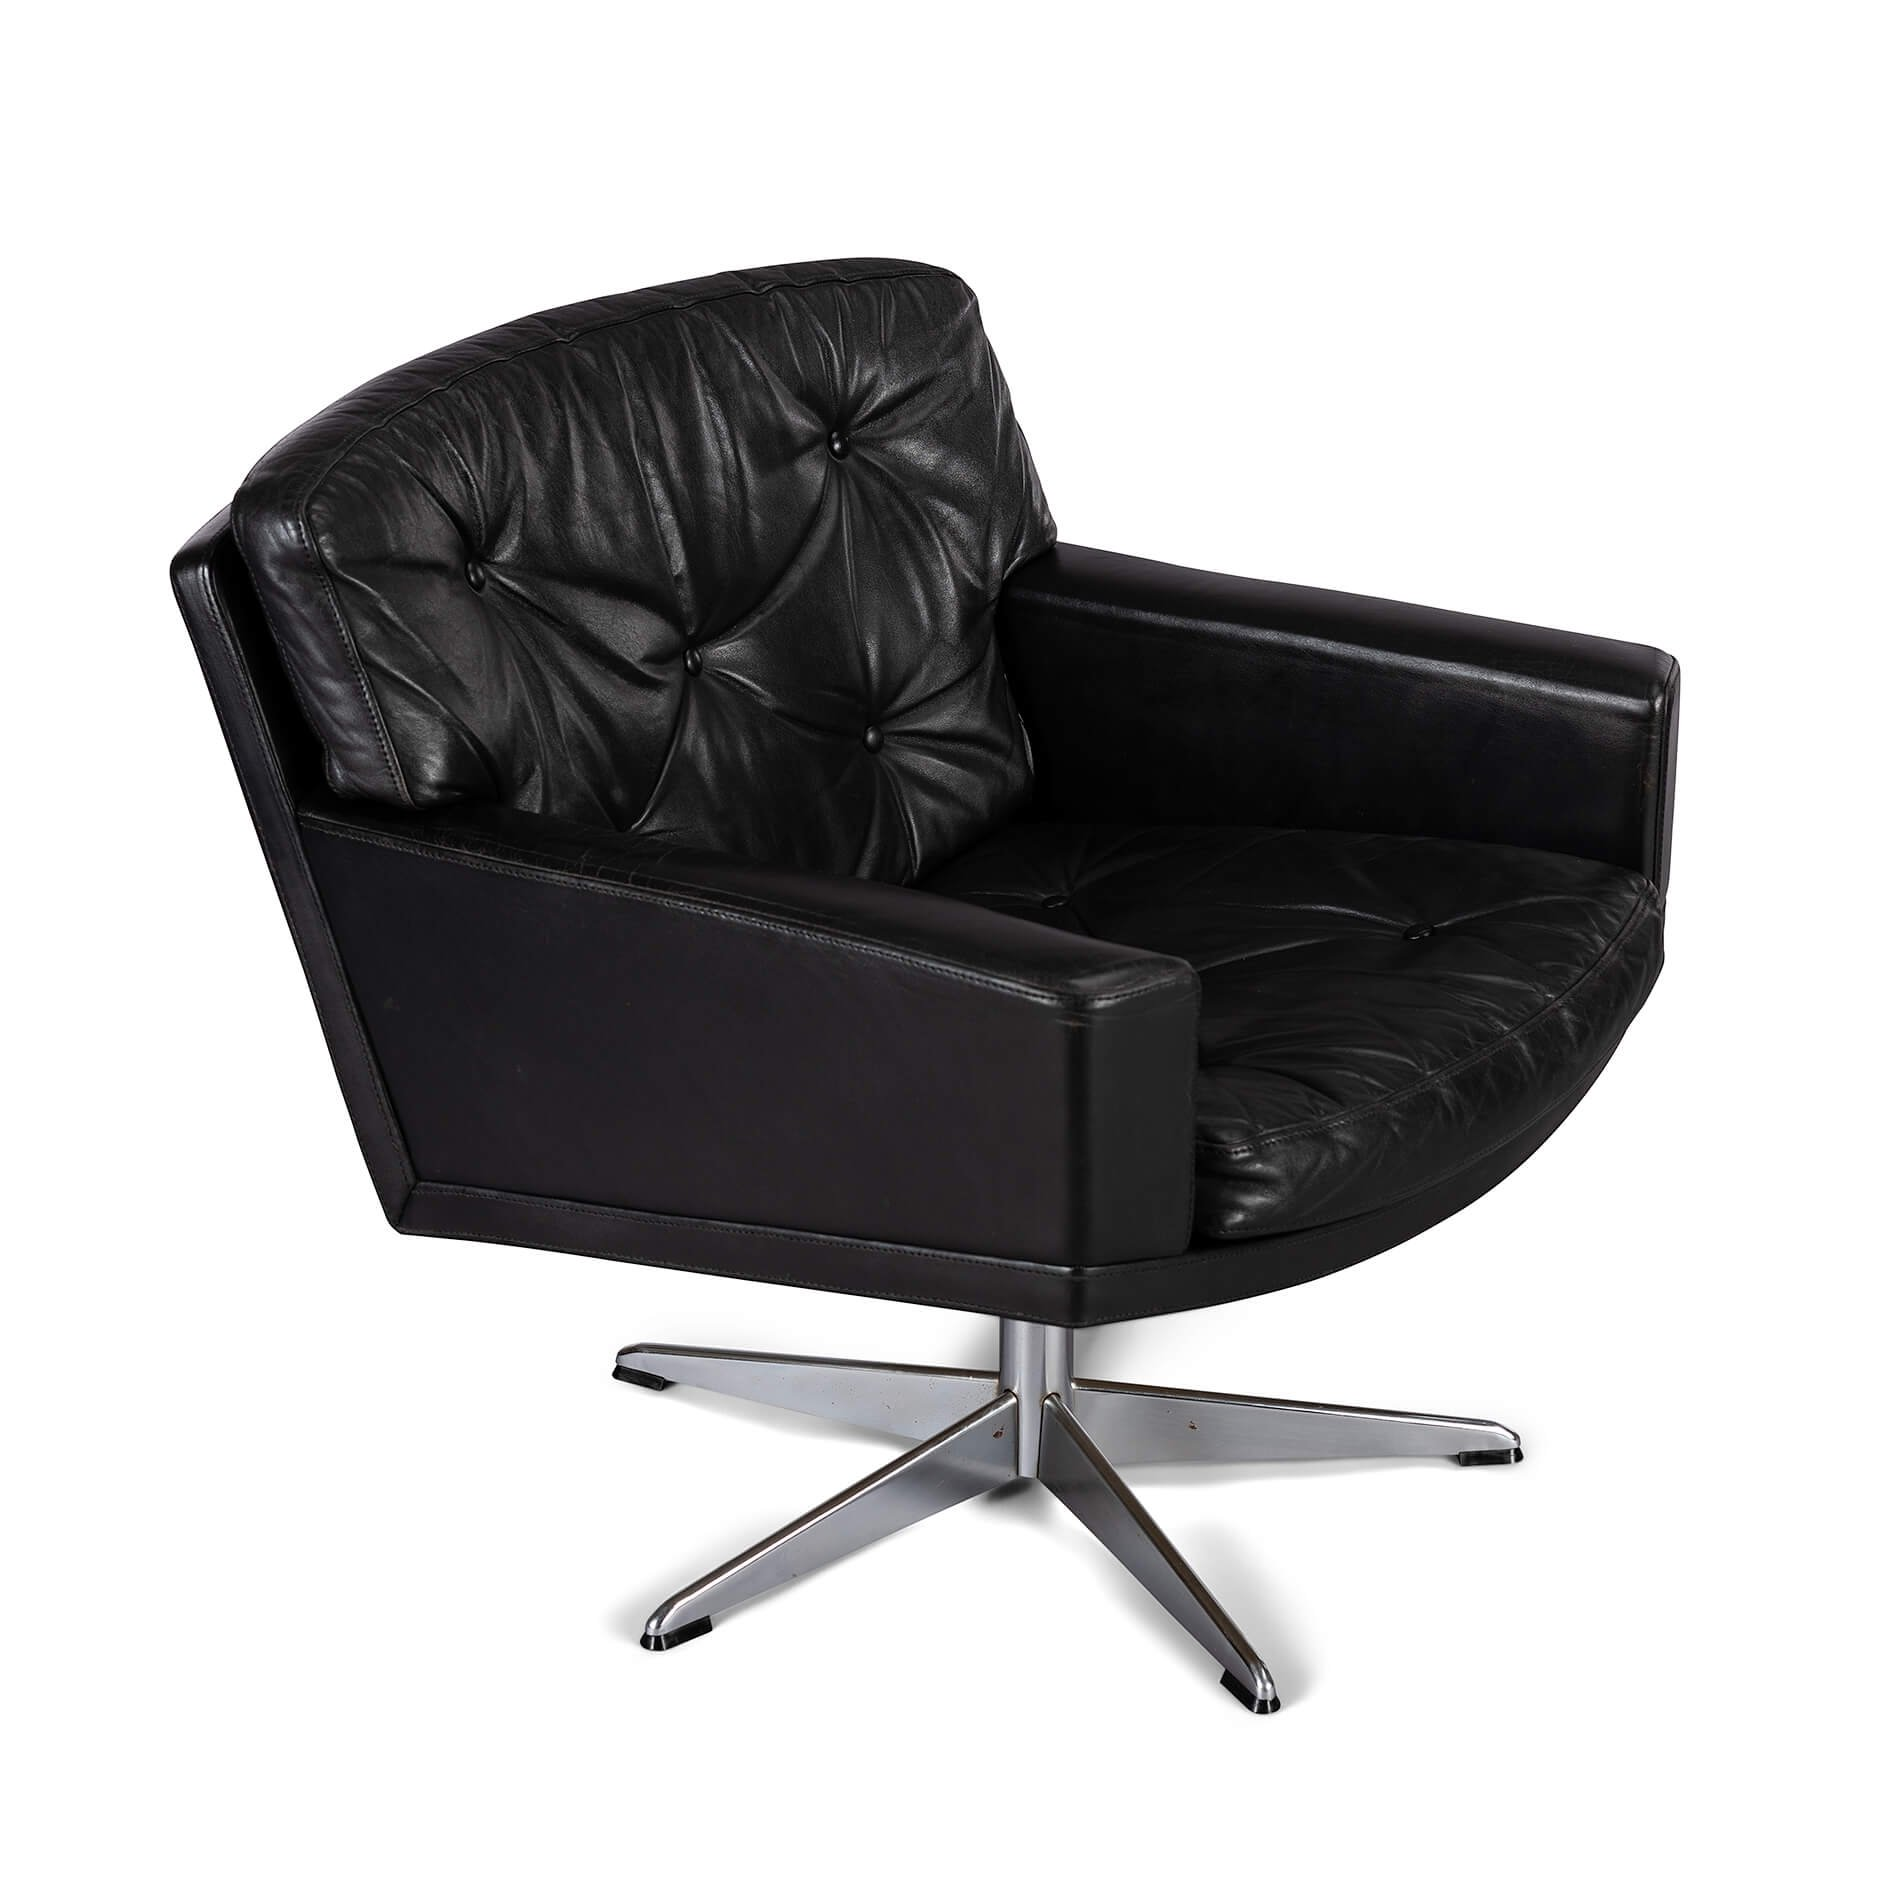 Black Leather Midcentury Modern Swivel Chair By Lystager 1960s 124125